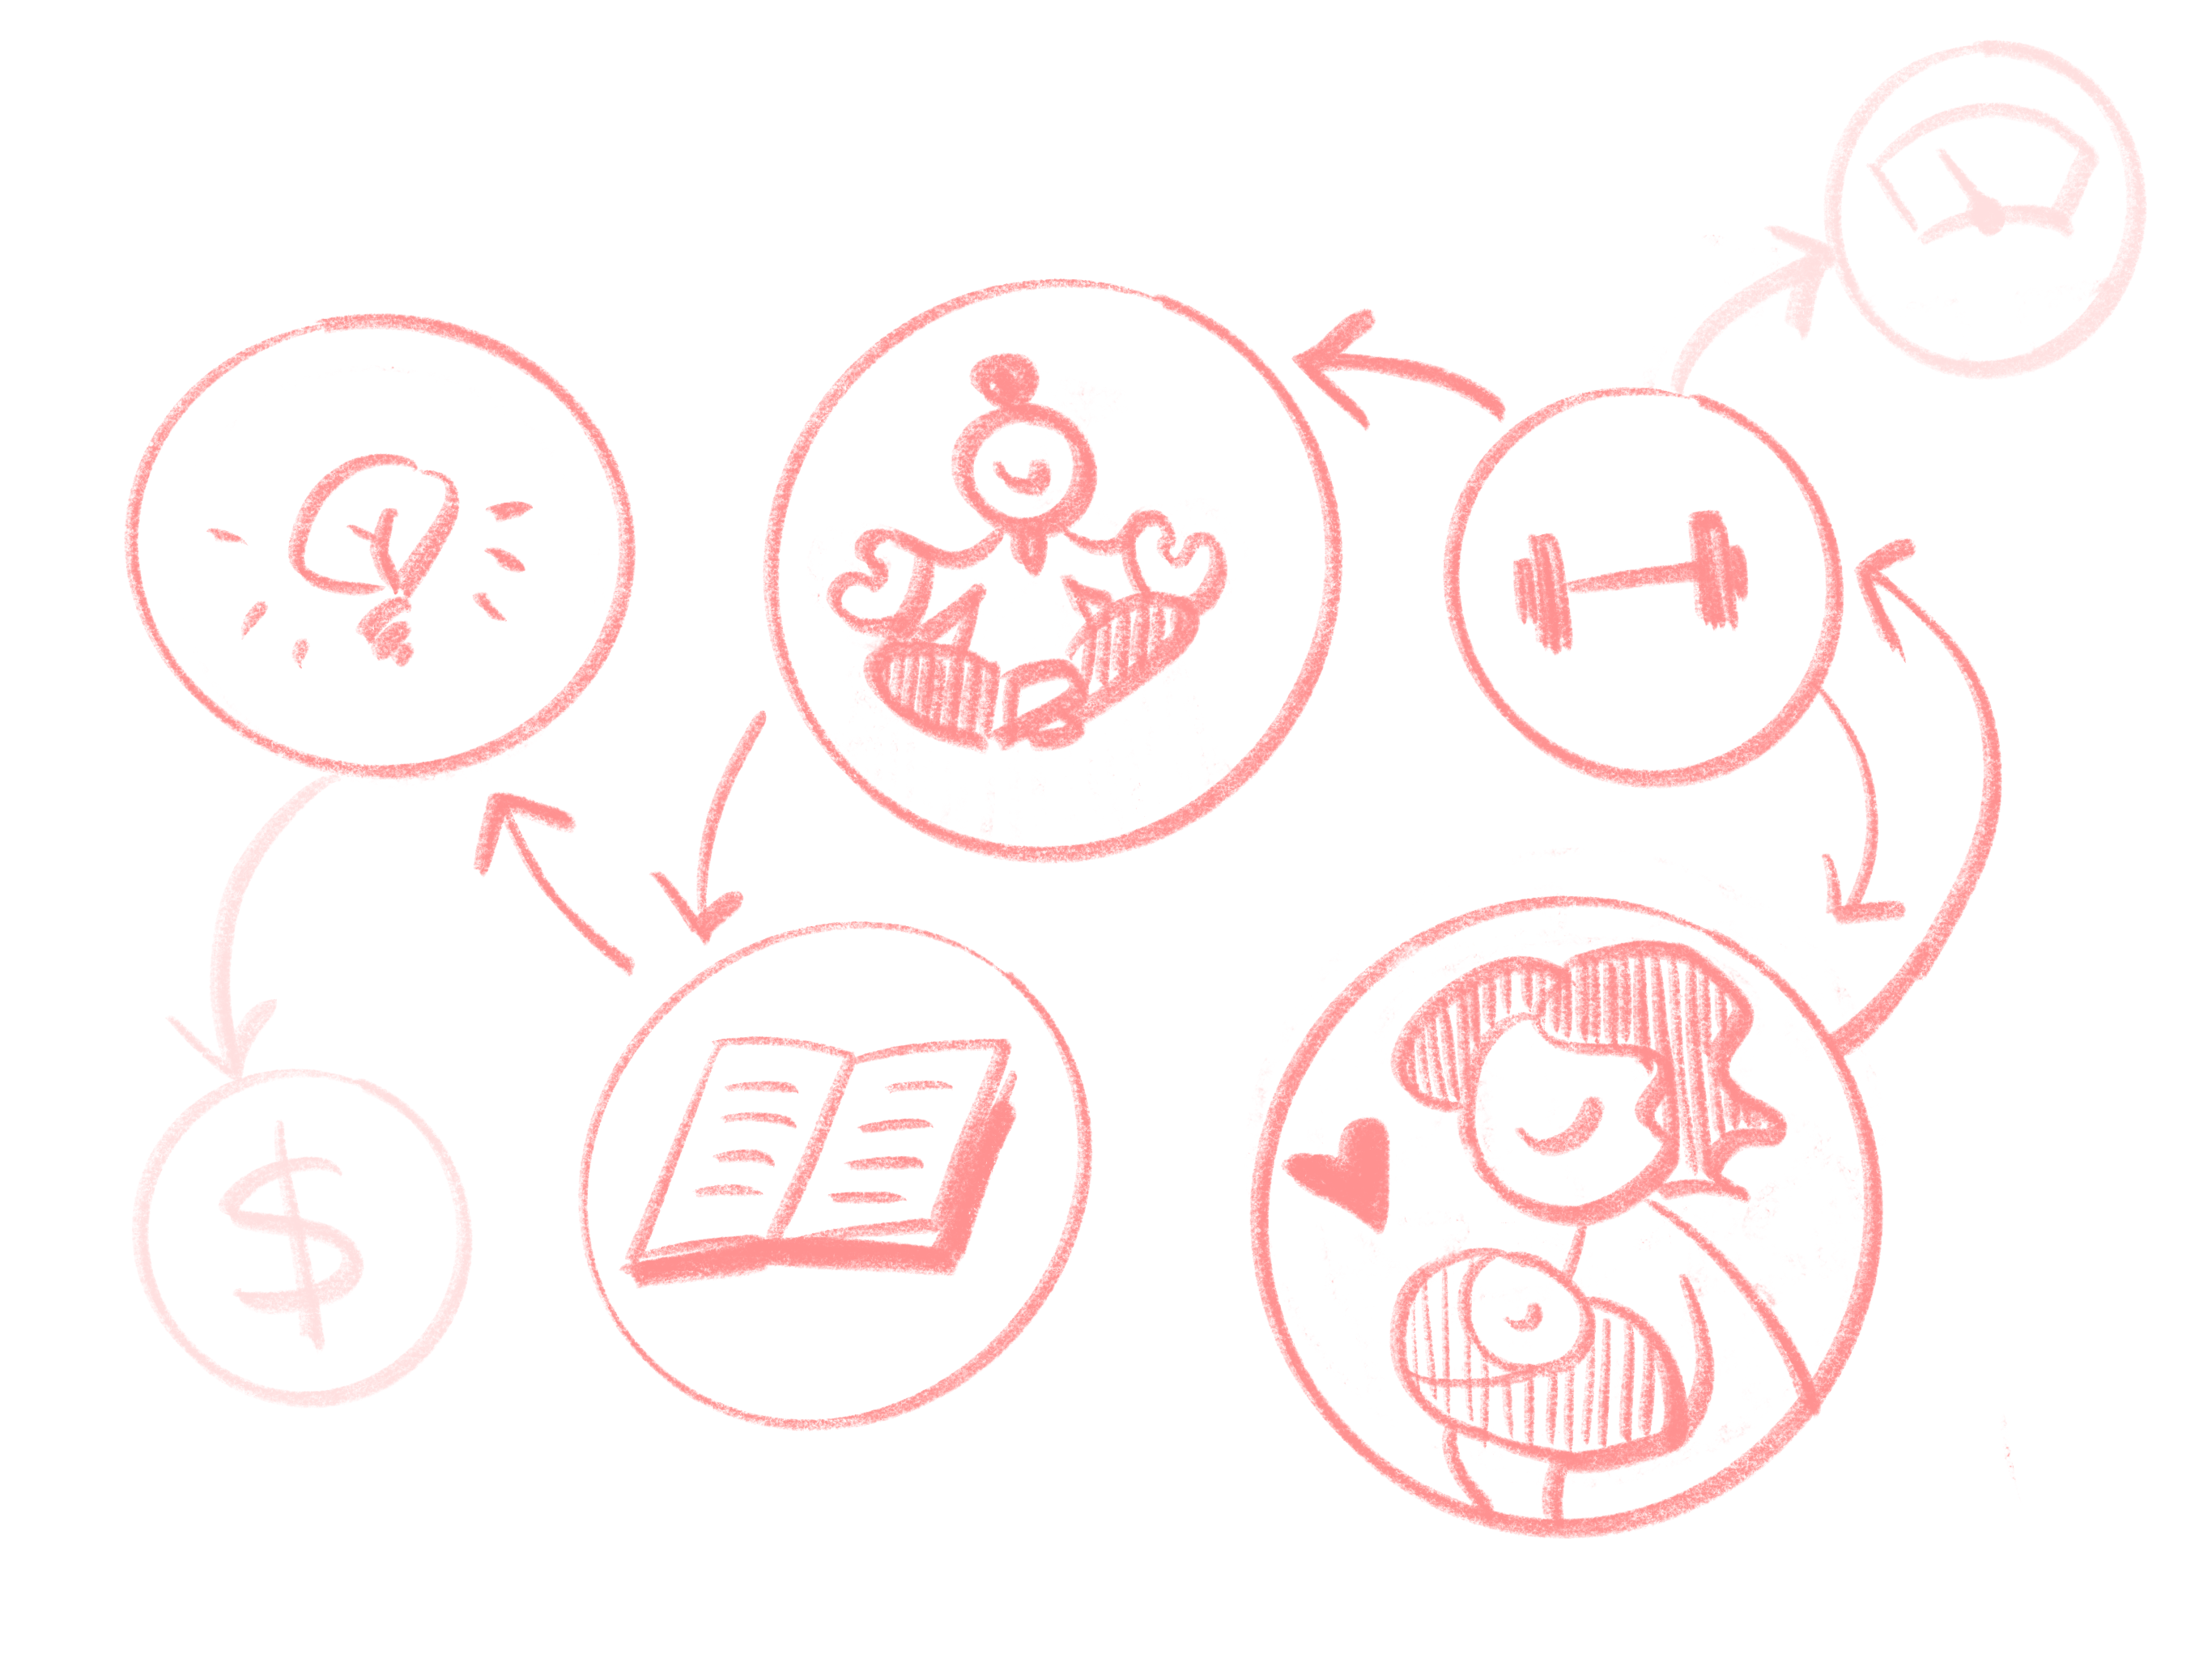 A diagram showing connections between symbols representing Anjali's health and family goals, as described in body text.